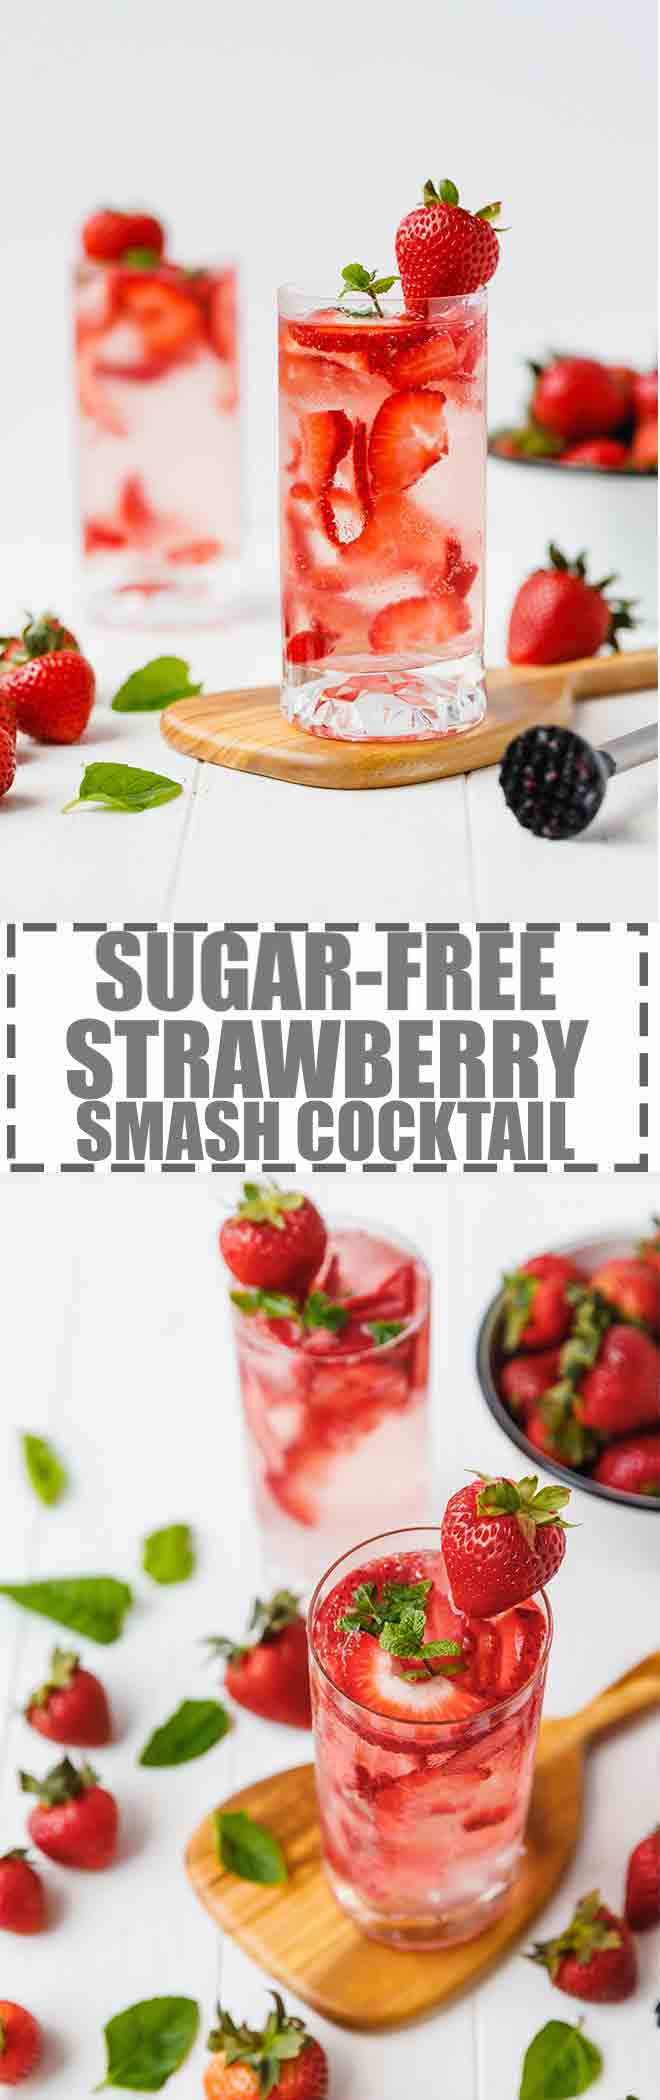 Sugar-Free Strawberry Smash Cocktail - quick and easy to make summer cocktail ready in two minutes with six basic ingredients. Fresh and delicious!